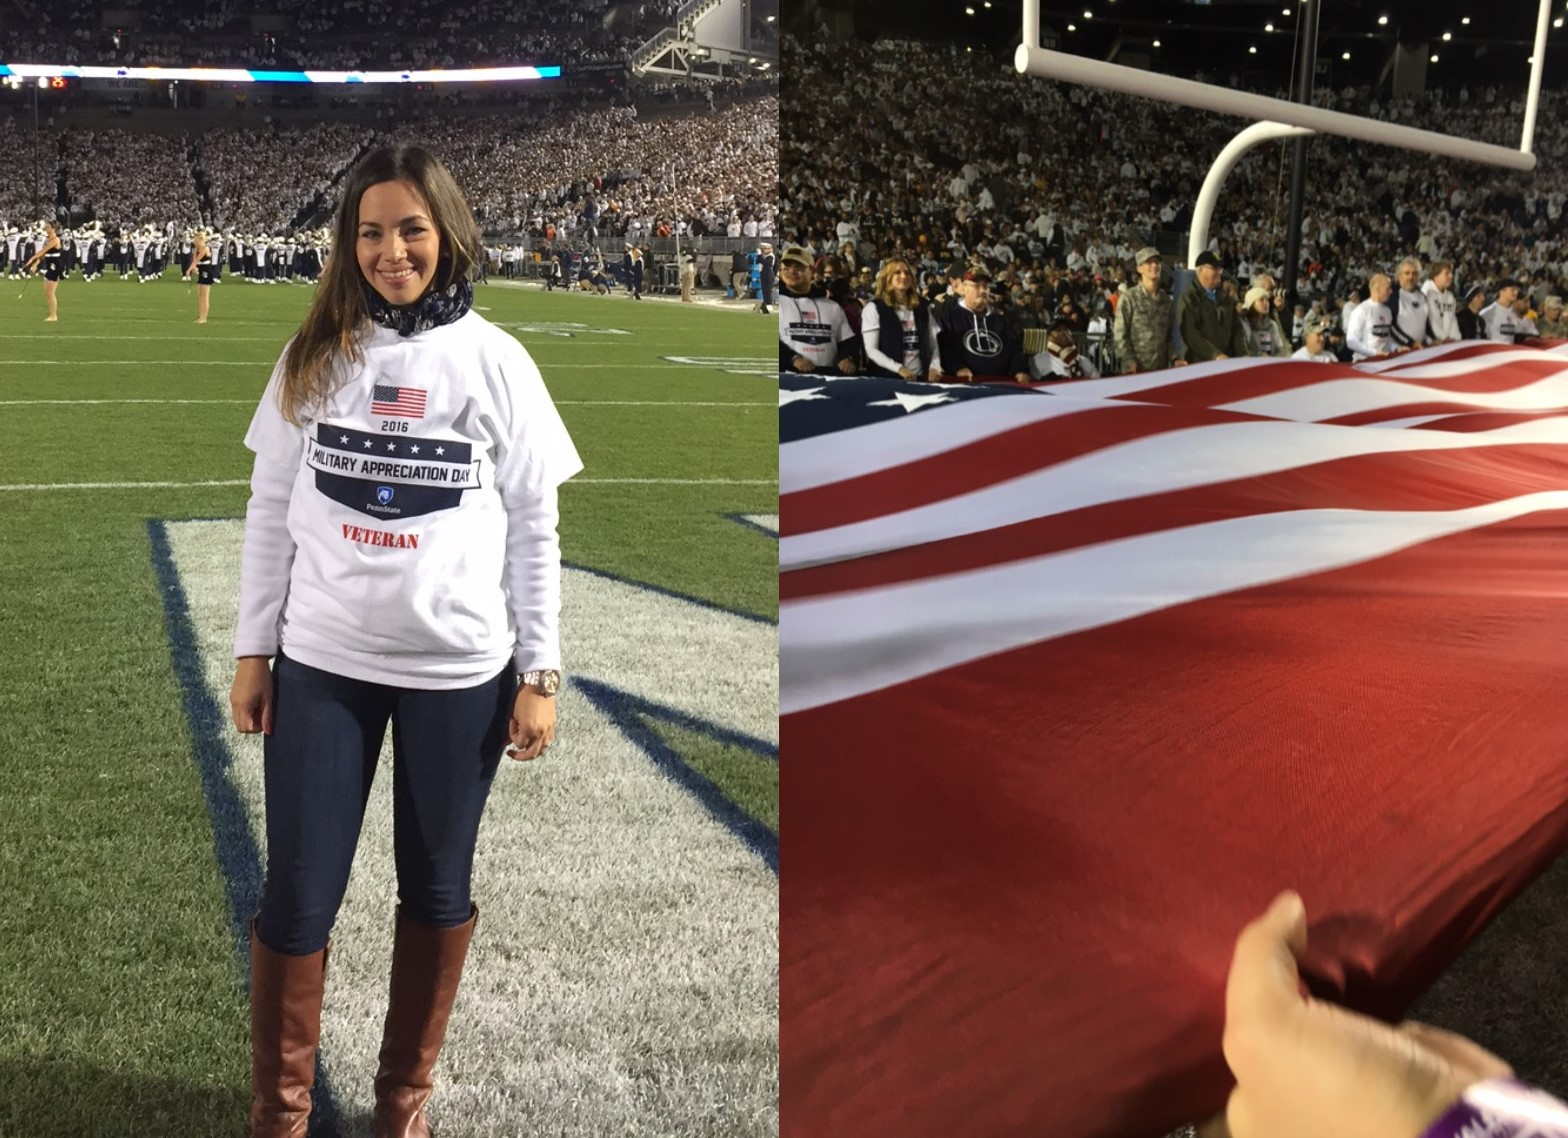 Pair of Marines, Penn State Great Valley Students Recognized Before 100,000 Fans at Beaver Stadium